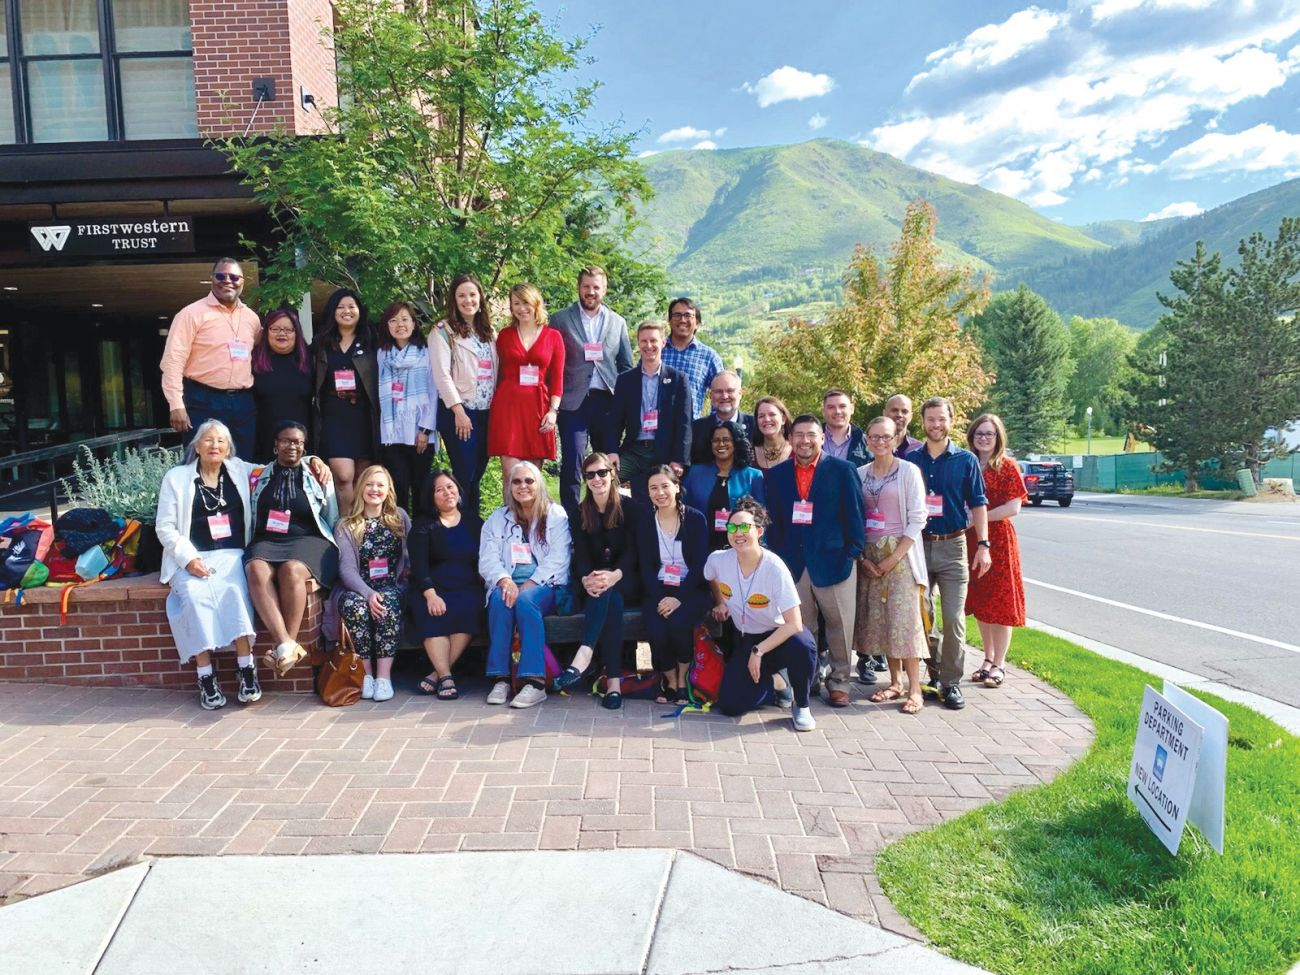 The 25 members of the Bush Foundation cohort at the Aspen Ideas Festival gathered to connect during the multi-day event in June 2019.